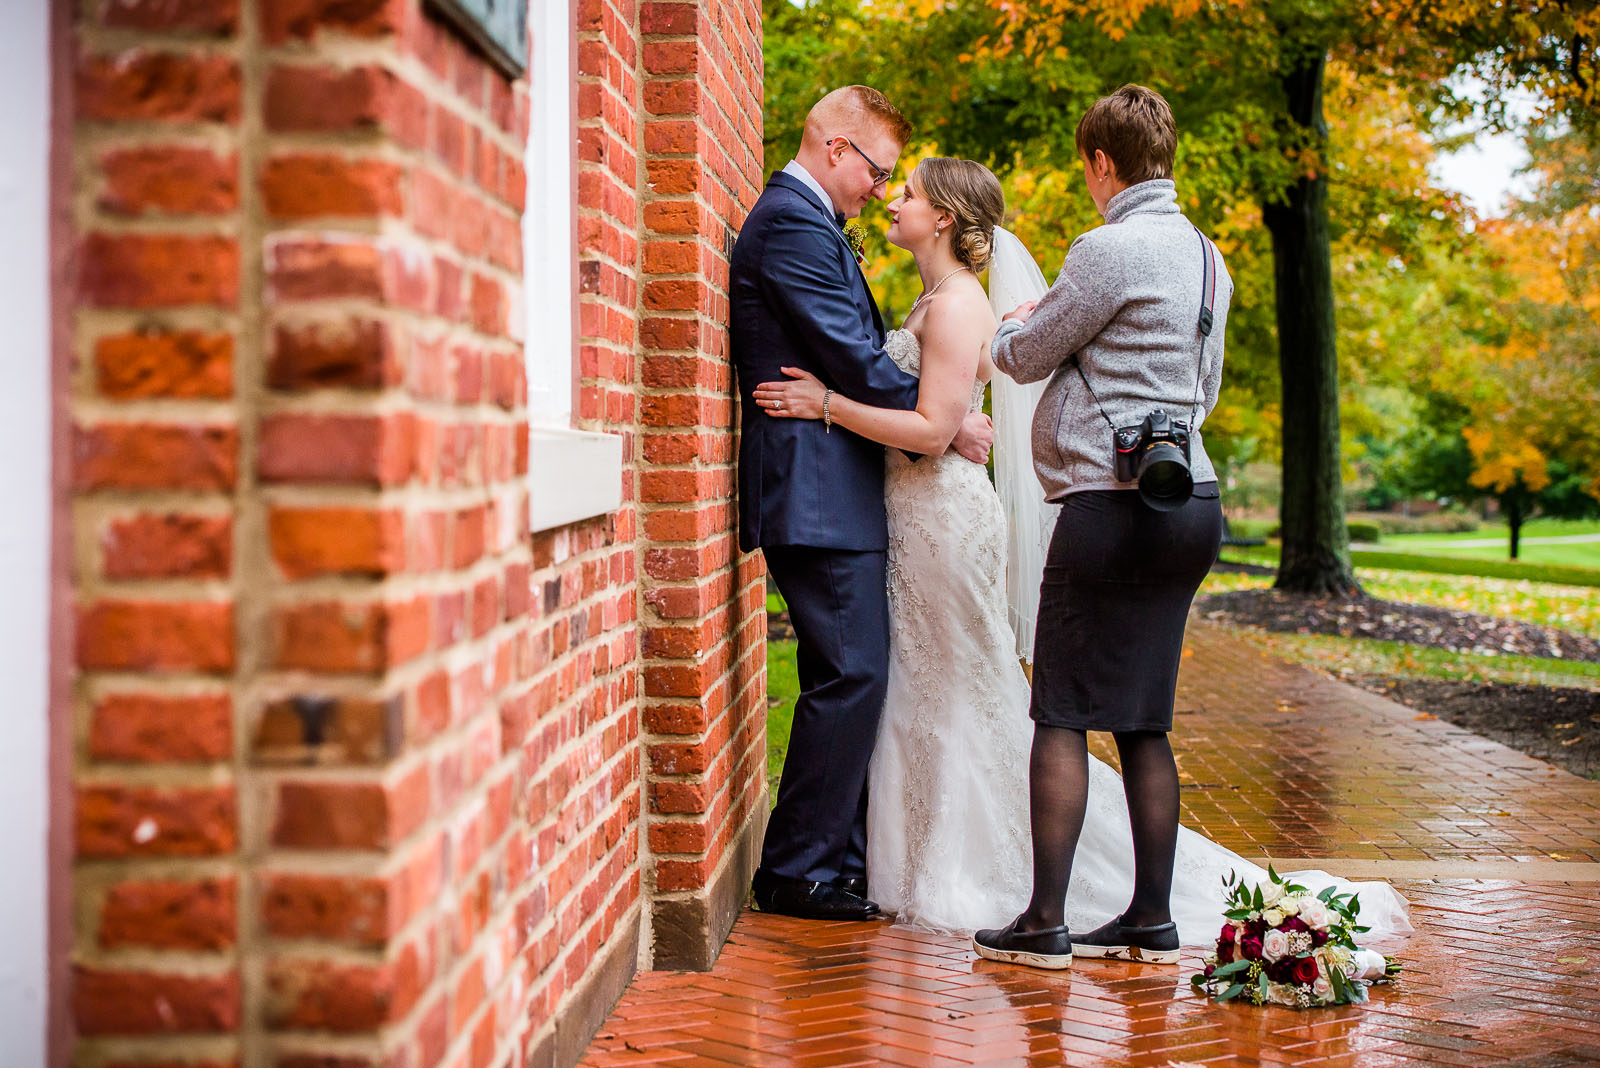 Eric_and_Christy_Photography_Blog_Wedding_Erica_Mike-90